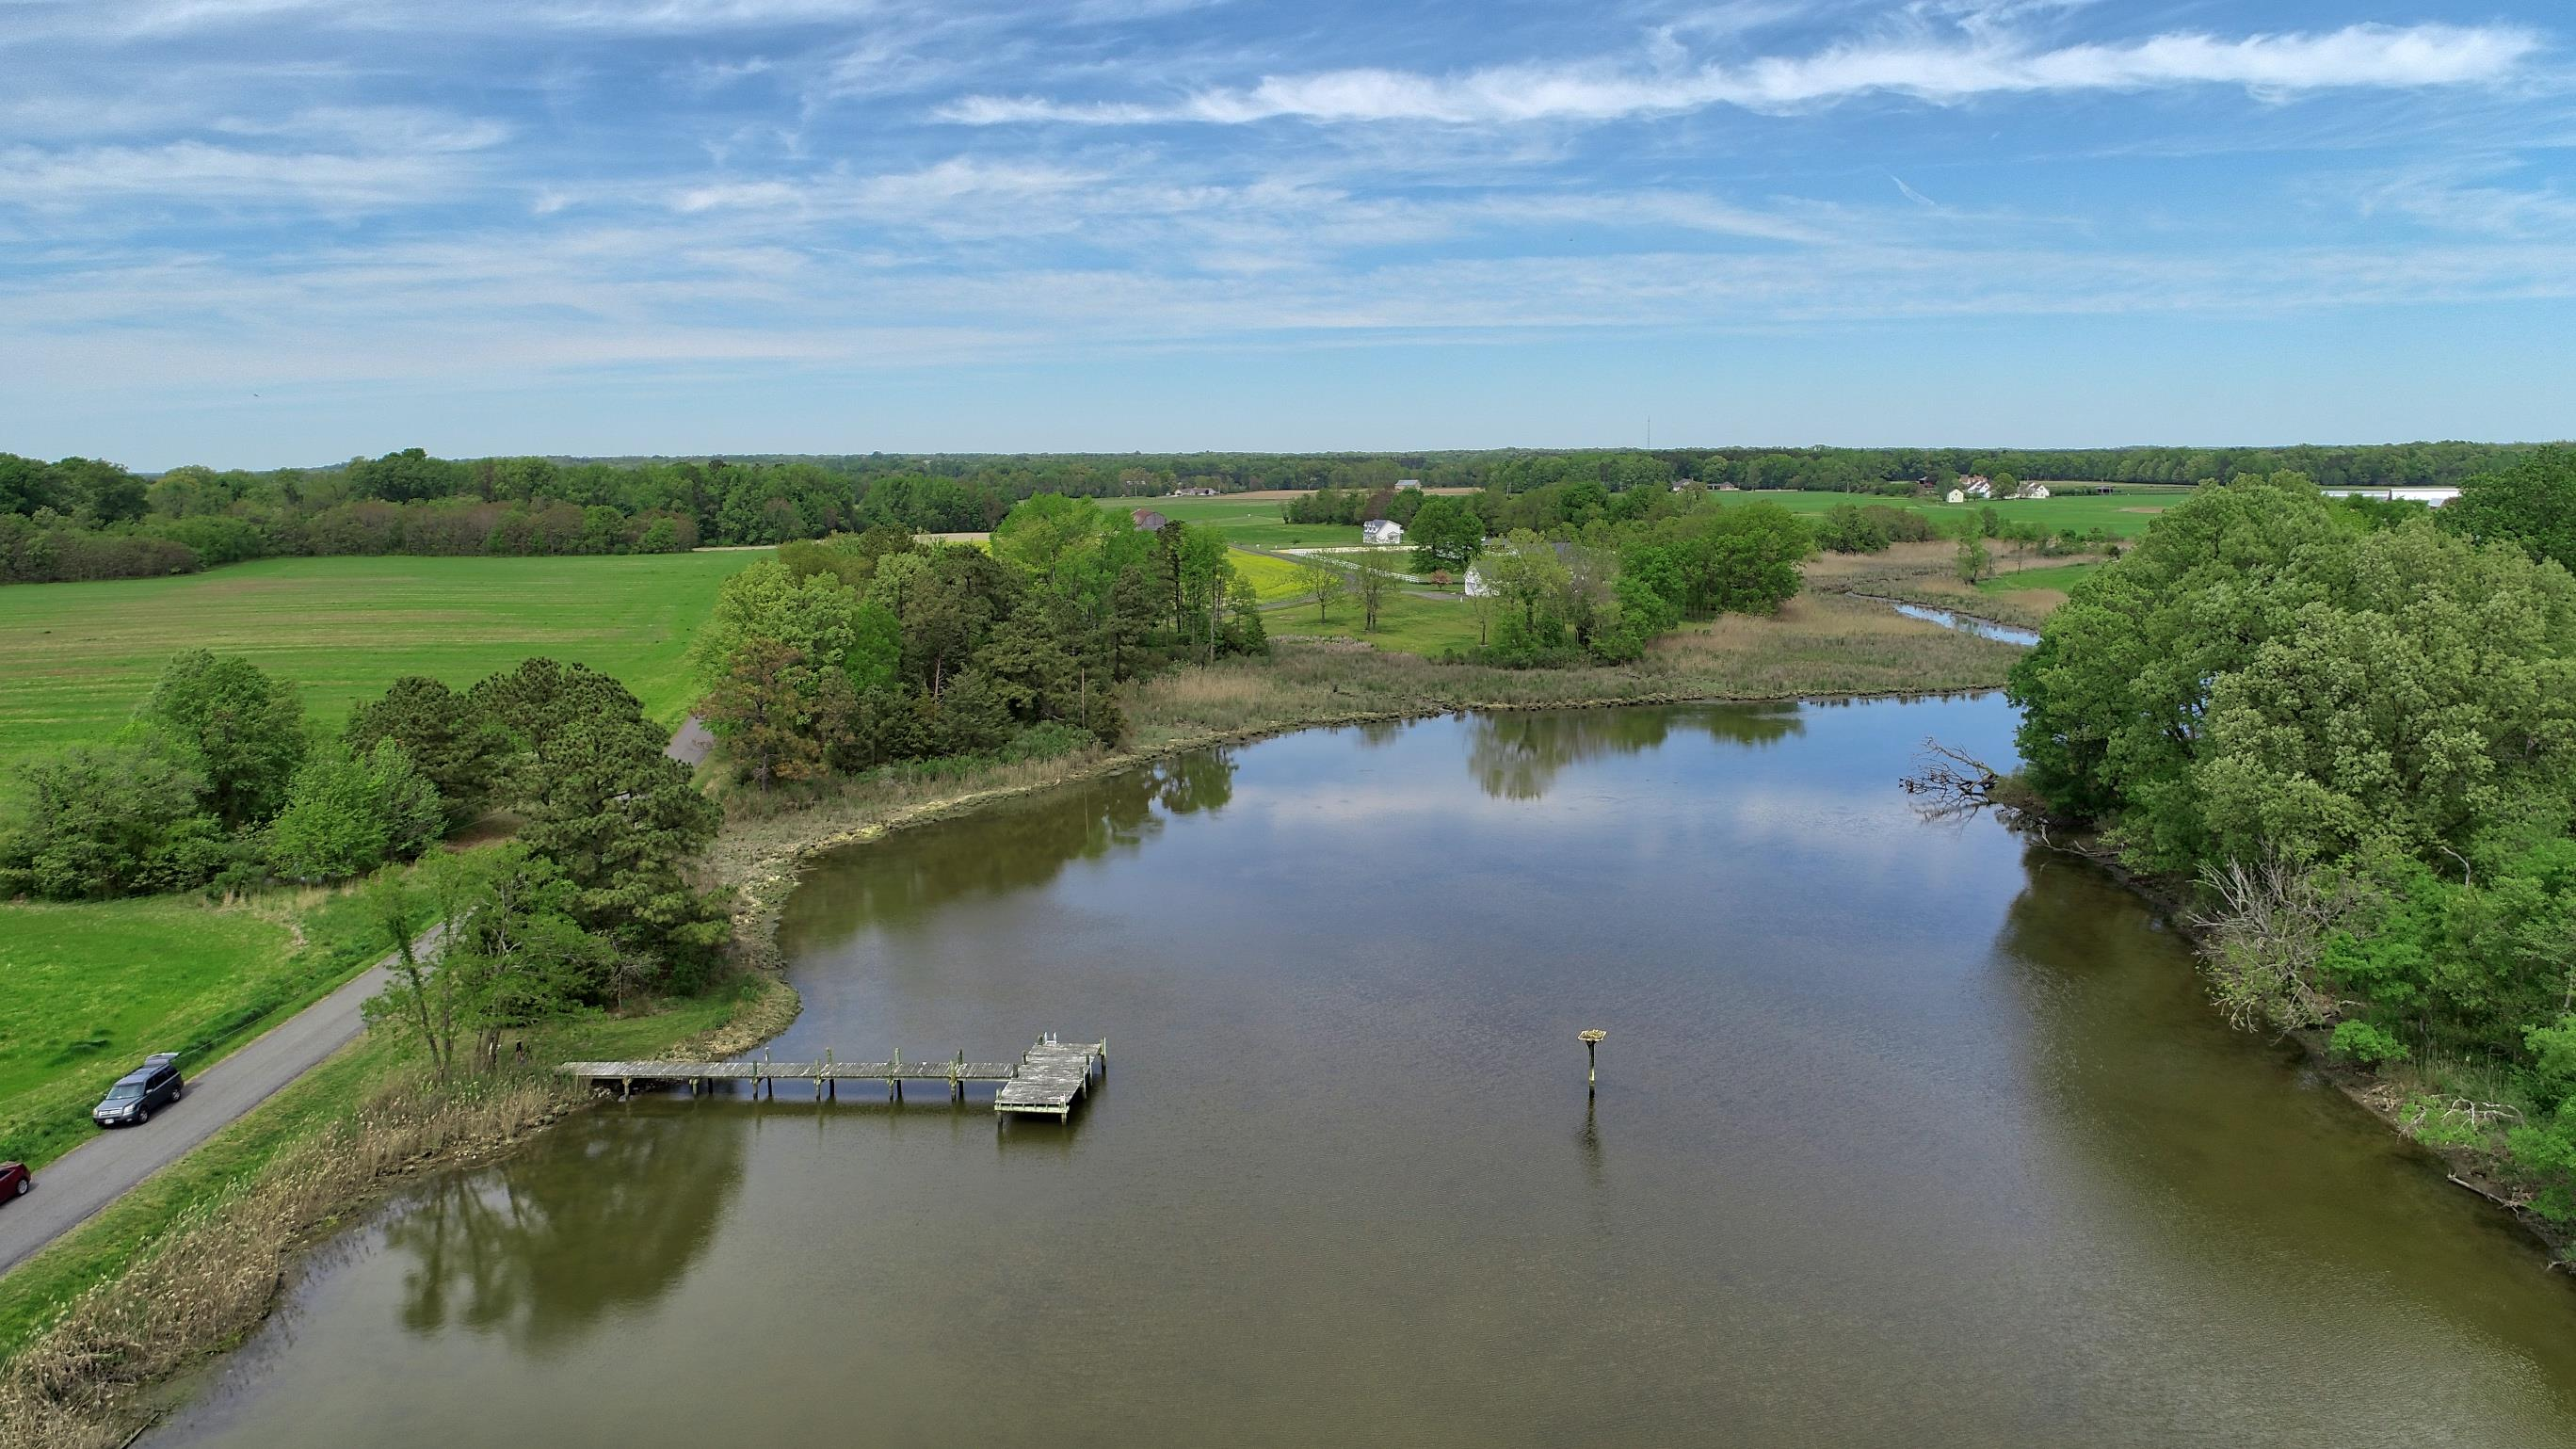 Waterfront Horse Property at 21581 Montfort Road in Bushwood, Saint Marys County!  Marie Lally Presents another Fabulous Horse Property for Sale in Saint Marys County MD!